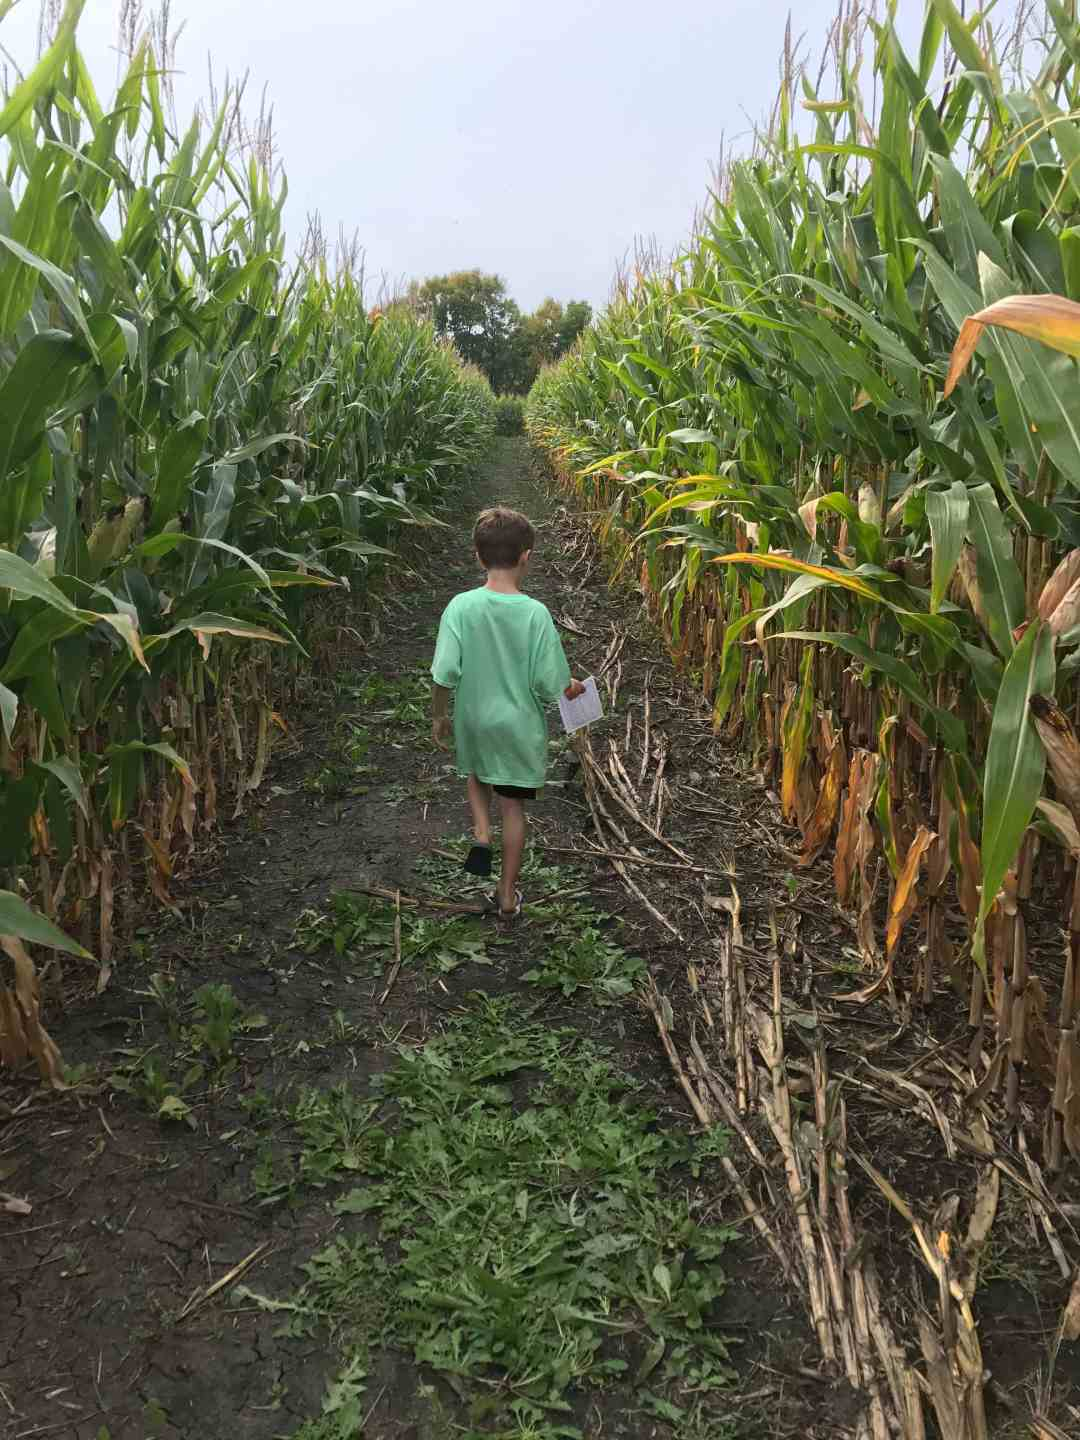 Getting Lost in Corn at the Crow River Wineries Maze